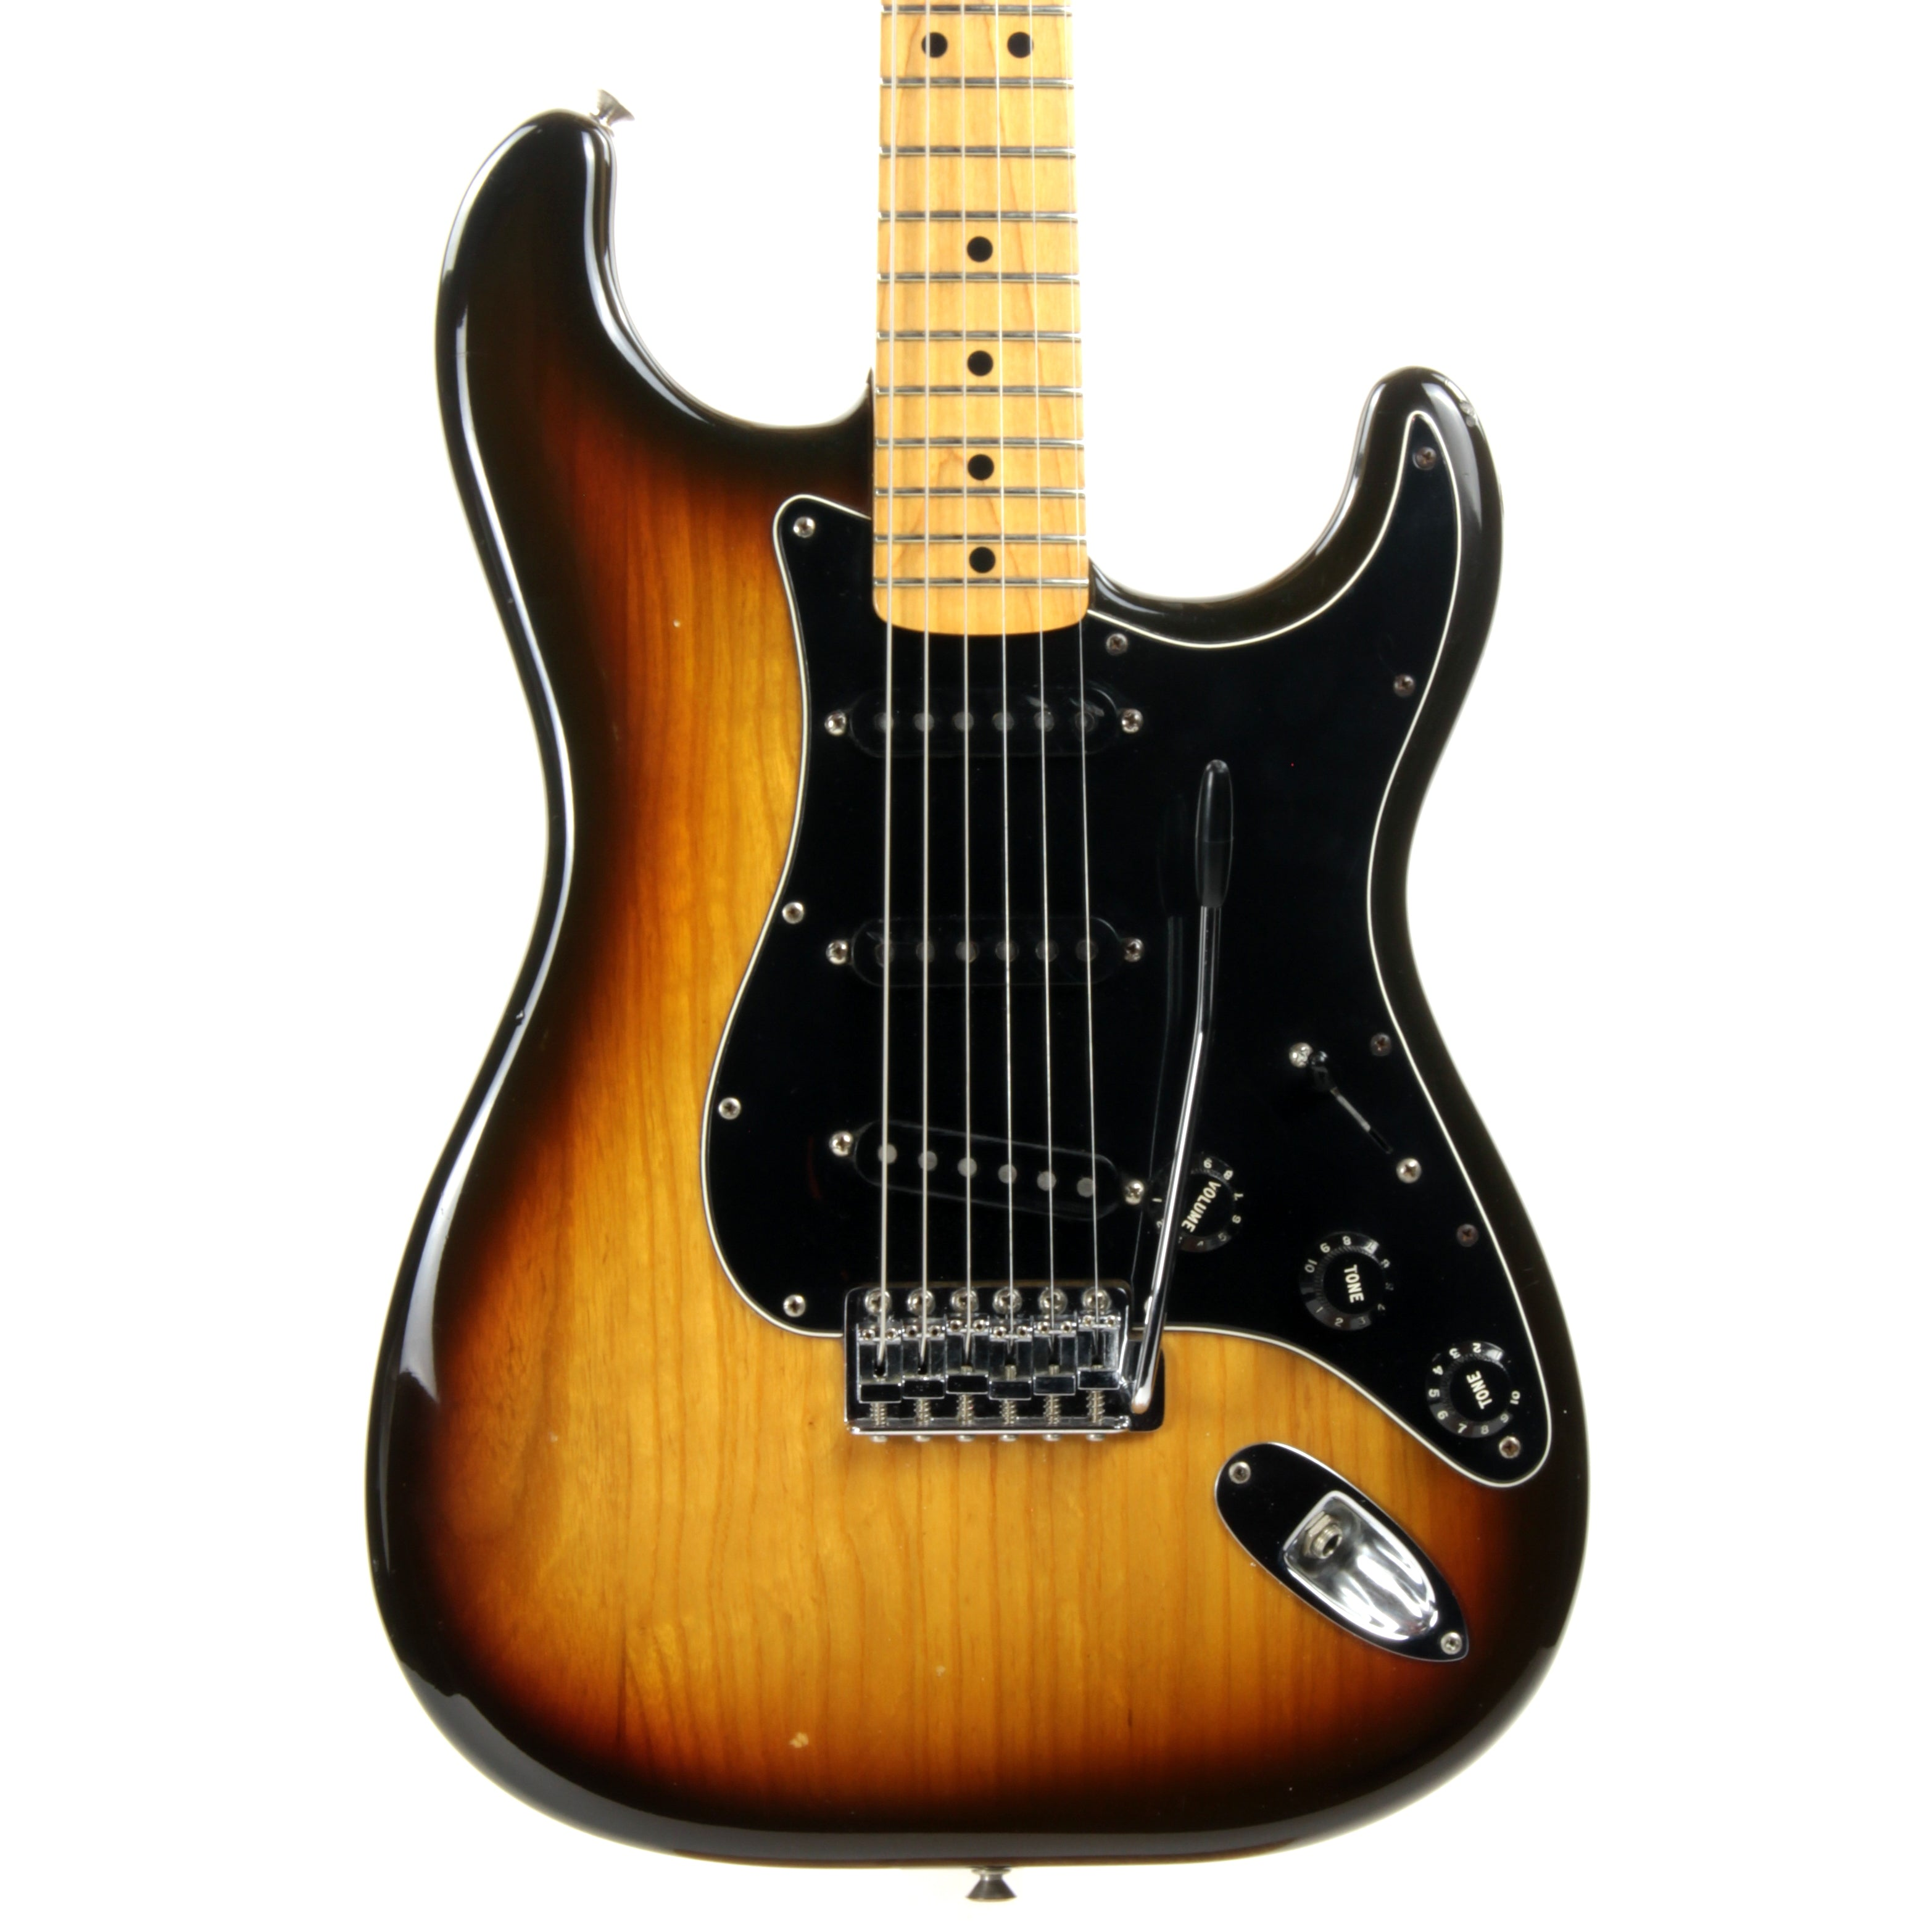 1979 Fender Stratocaster ASH 3-Tone Brown Sunburst - Maple Neck Strat Vintage USA 1970's